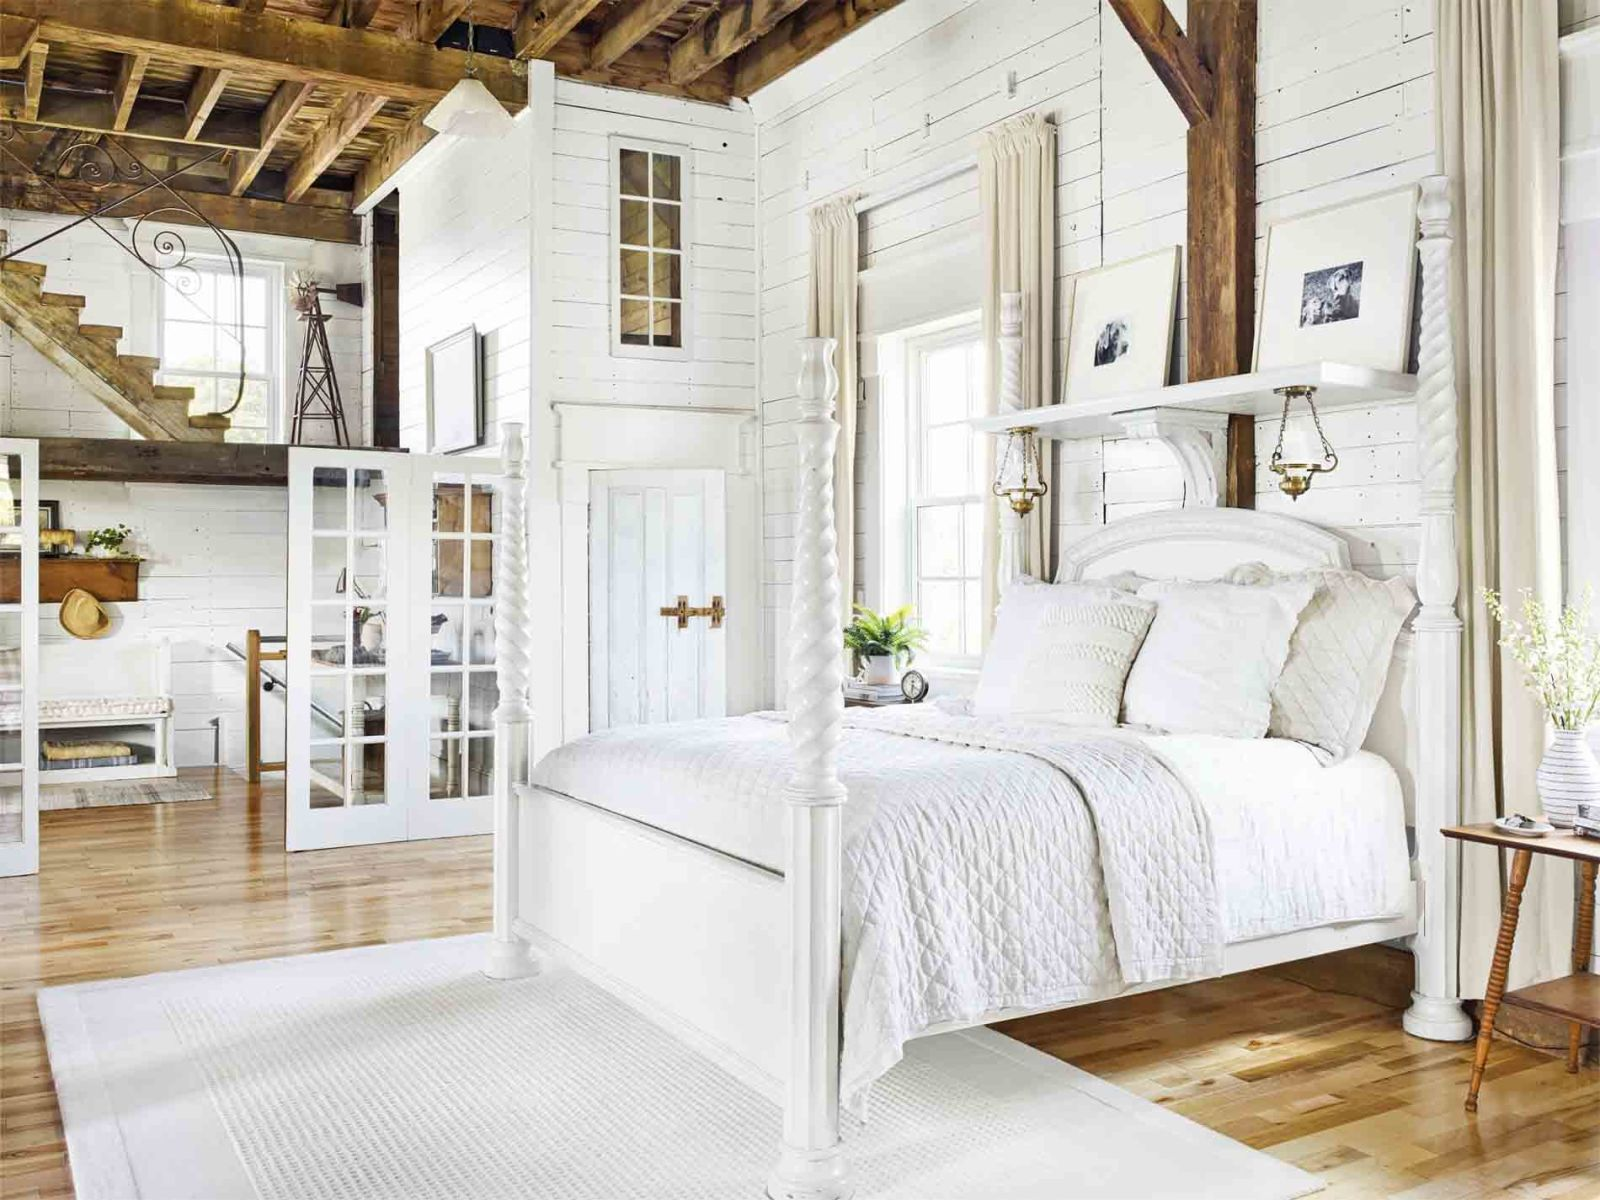 26 best white bedroom ideas how to decorate a white bedroom - 26 Best White Bedroom Ideas How To Decorate A White Bedroom 3